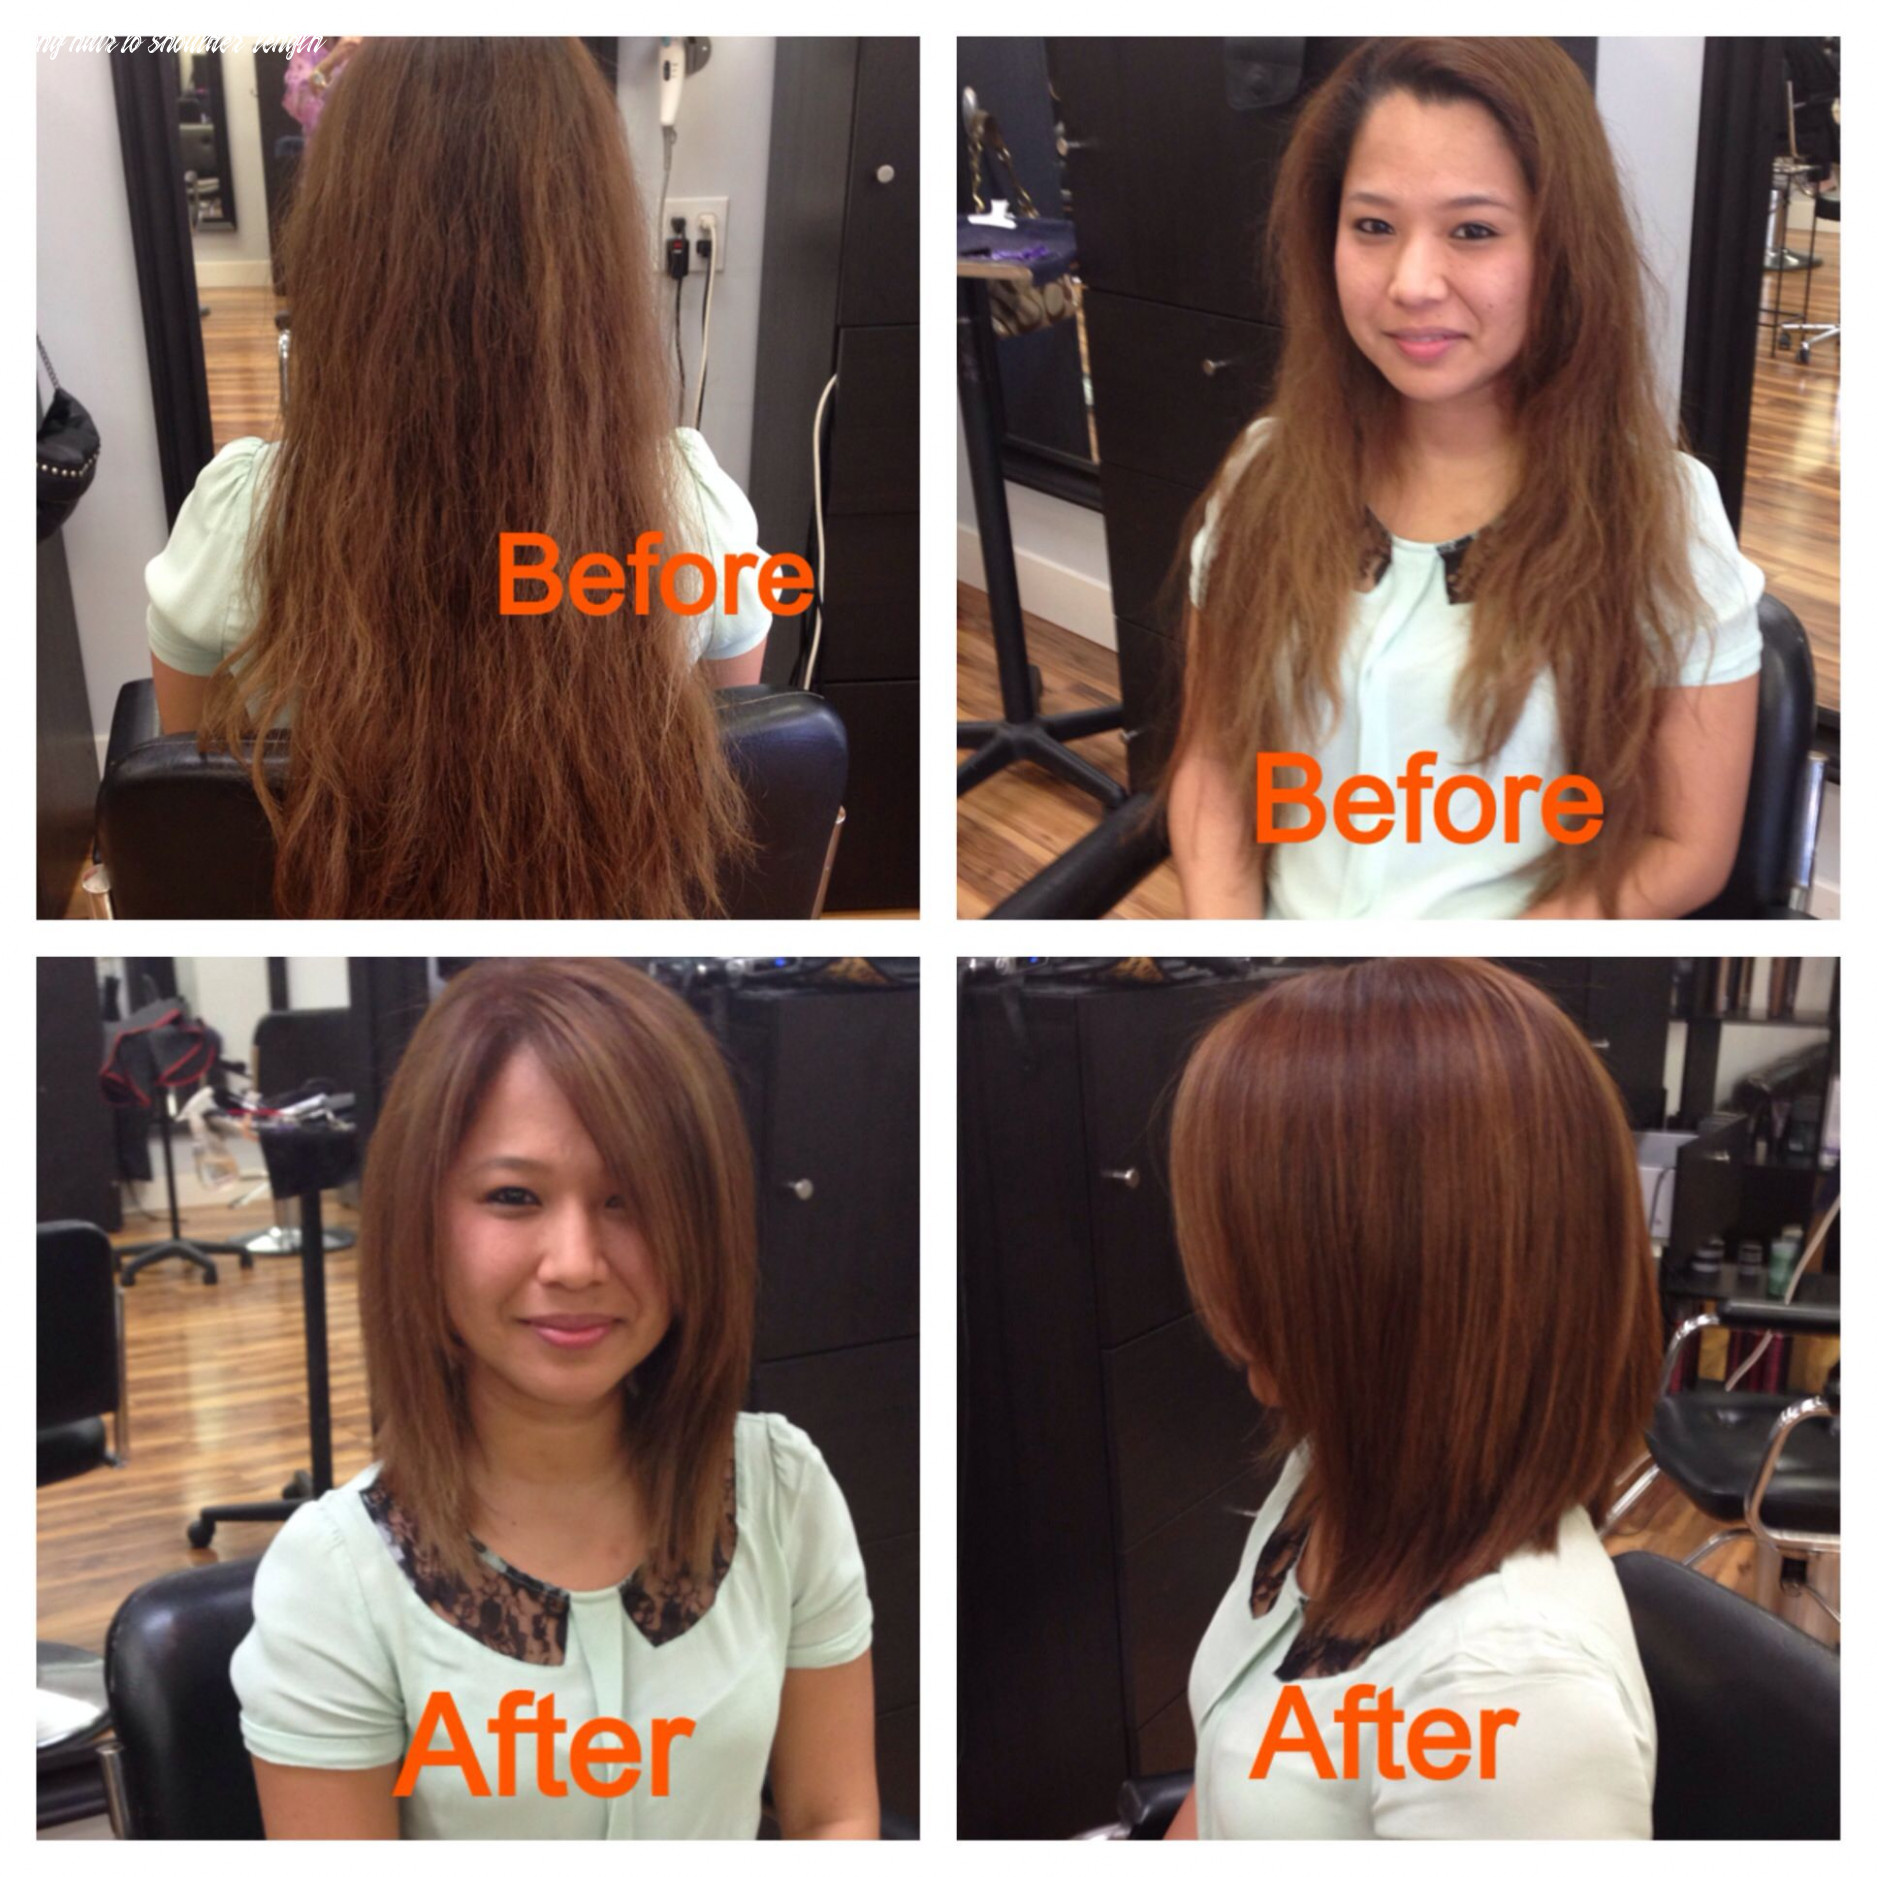 Pin on before & after long hair to shoulder length